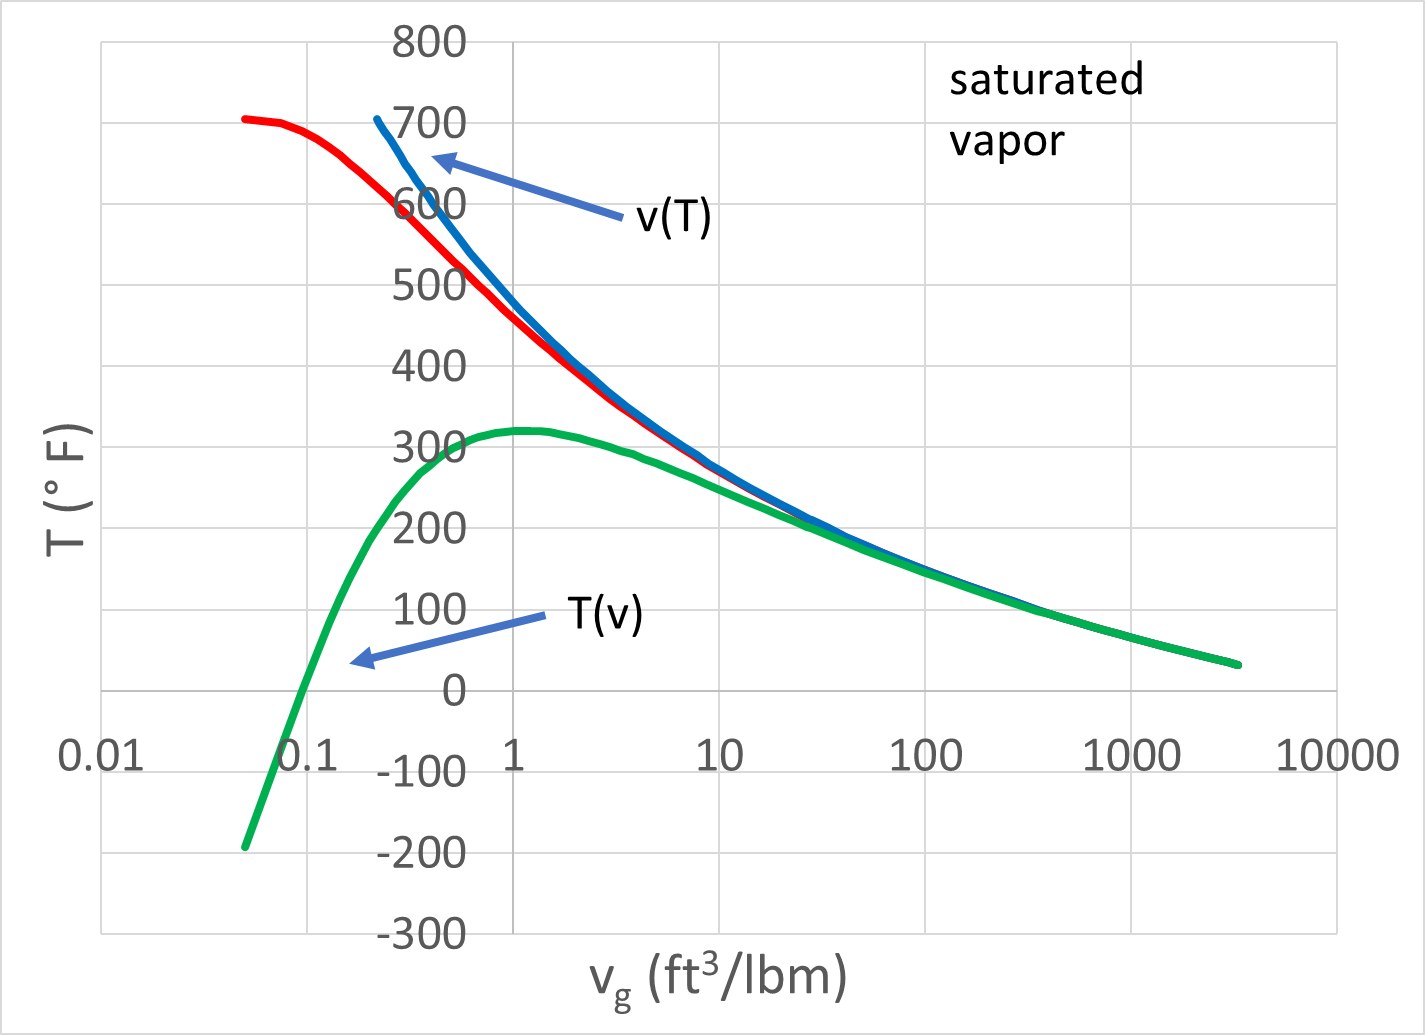 medium resolution of the red line represents the saturated vapor line the right side of the steam dome the blue line represents the calculation of v from values for